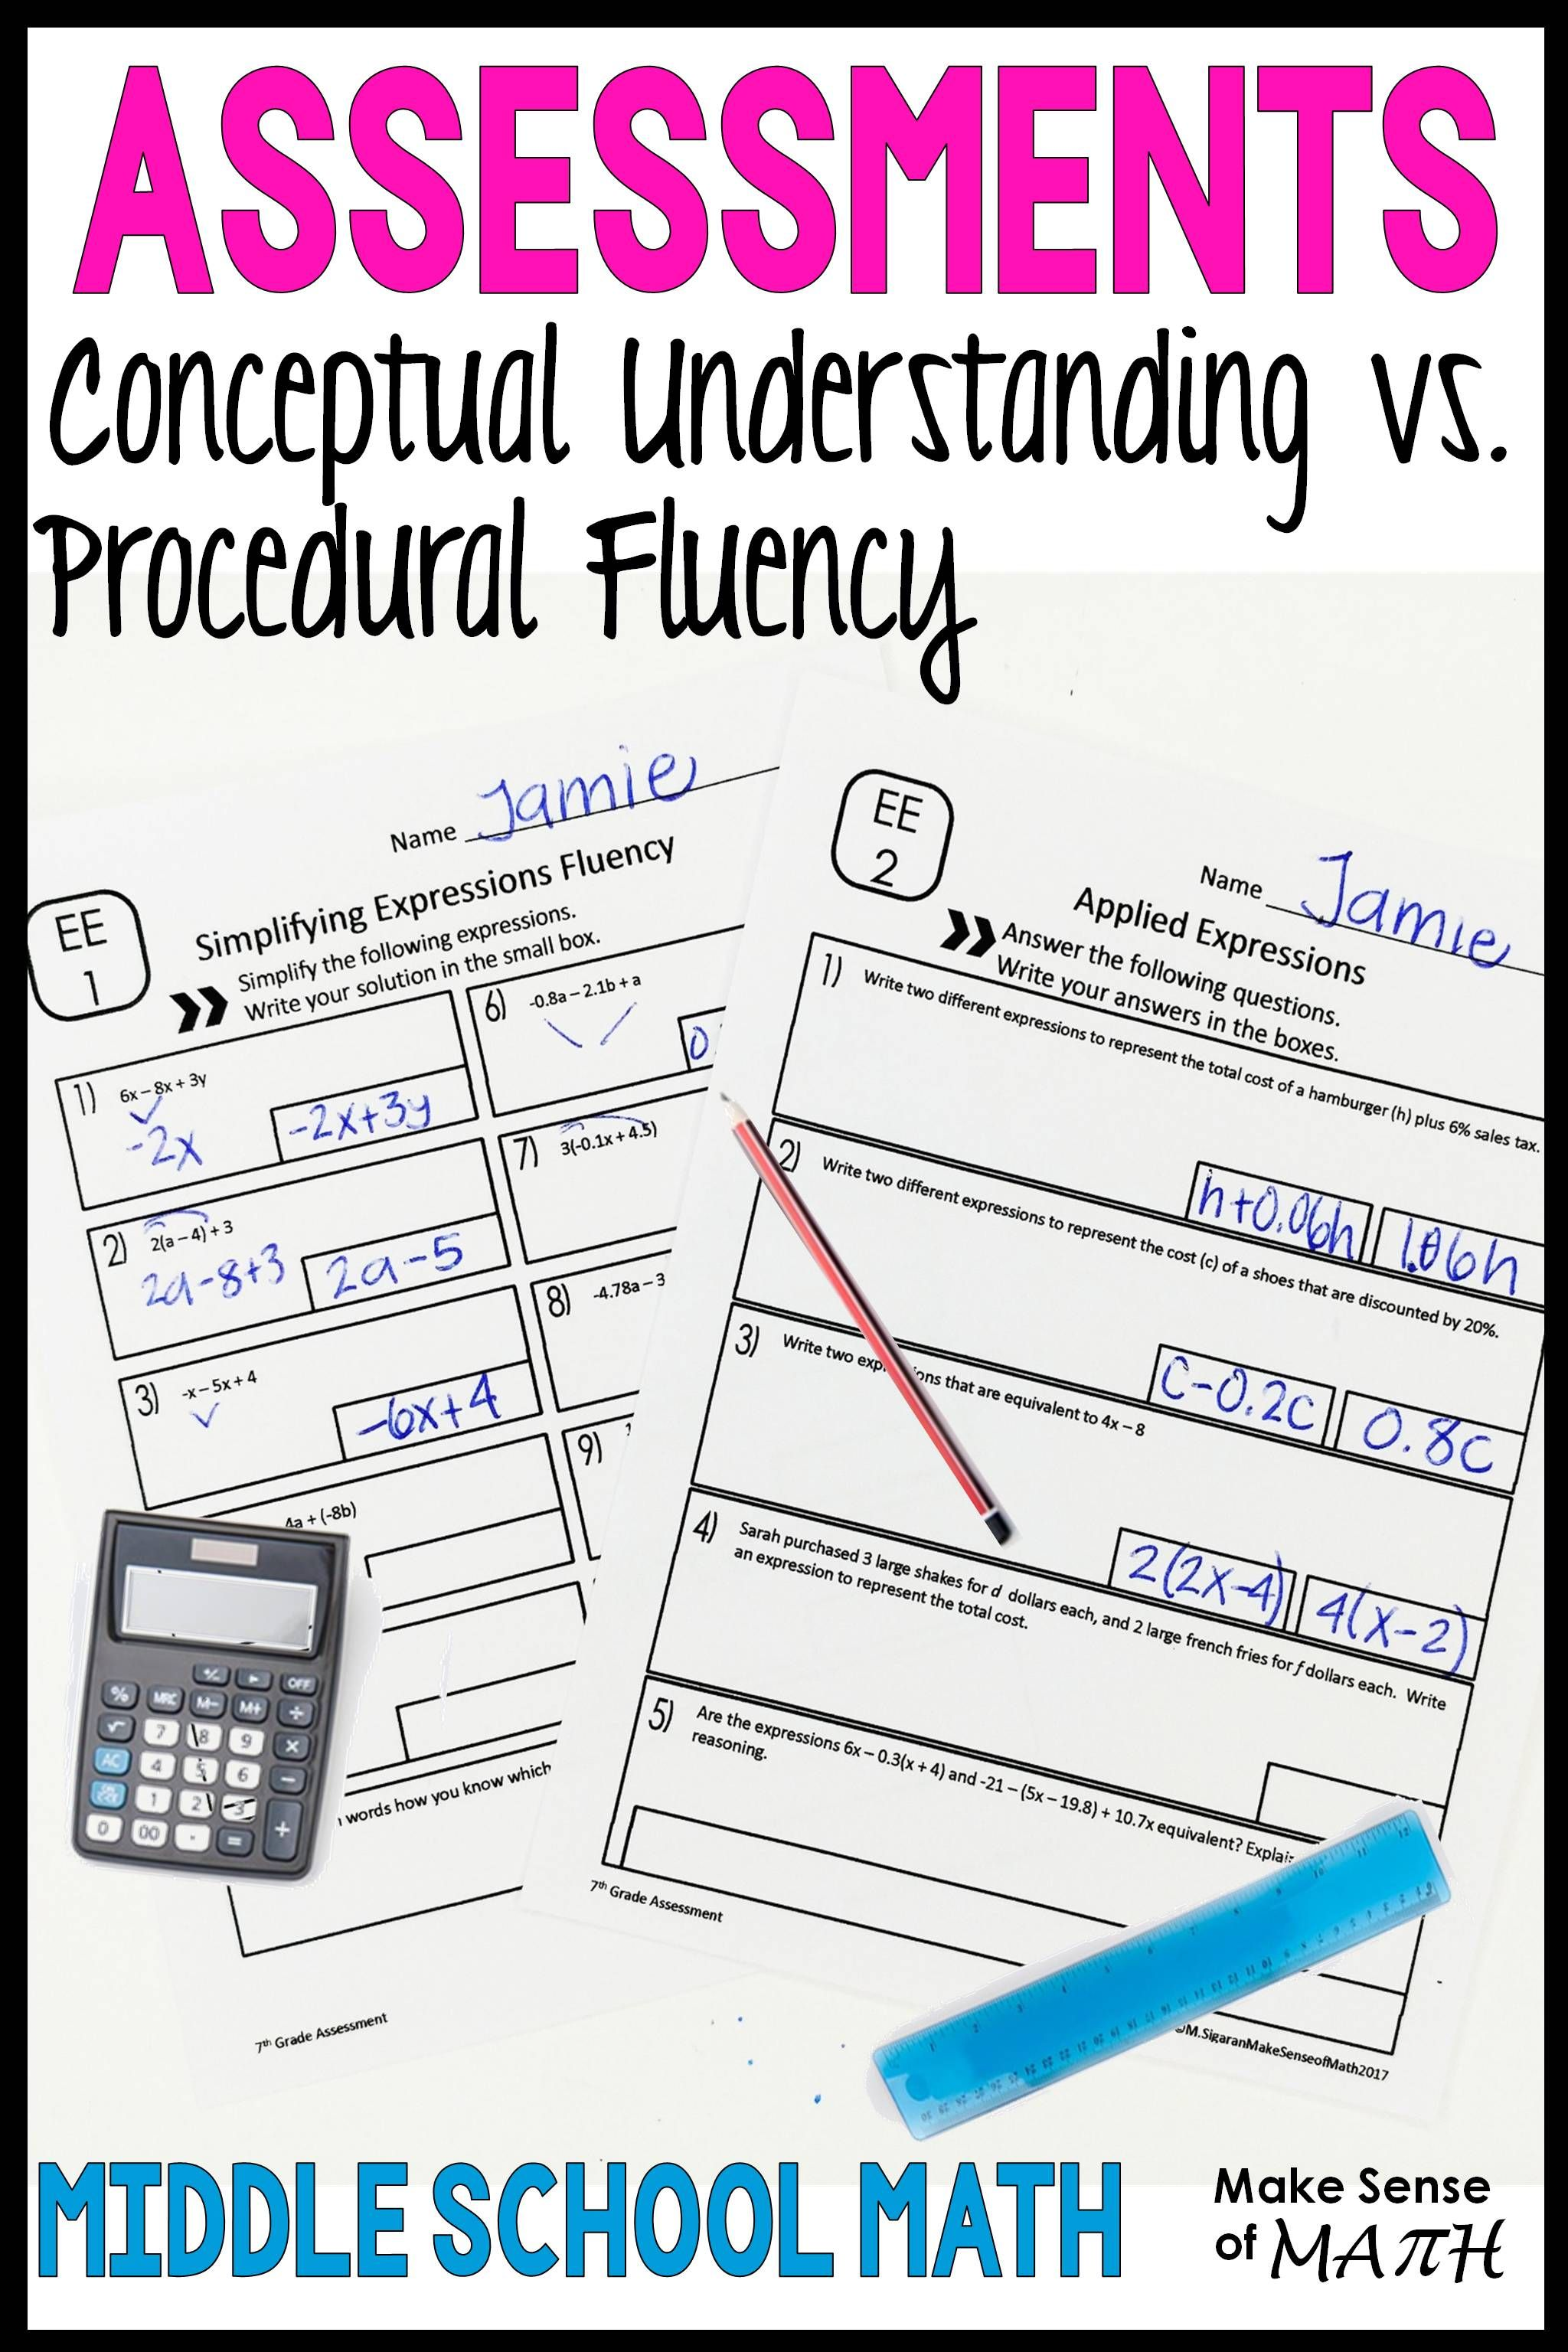 Assessments Conceptual Understanding Vs Procedural